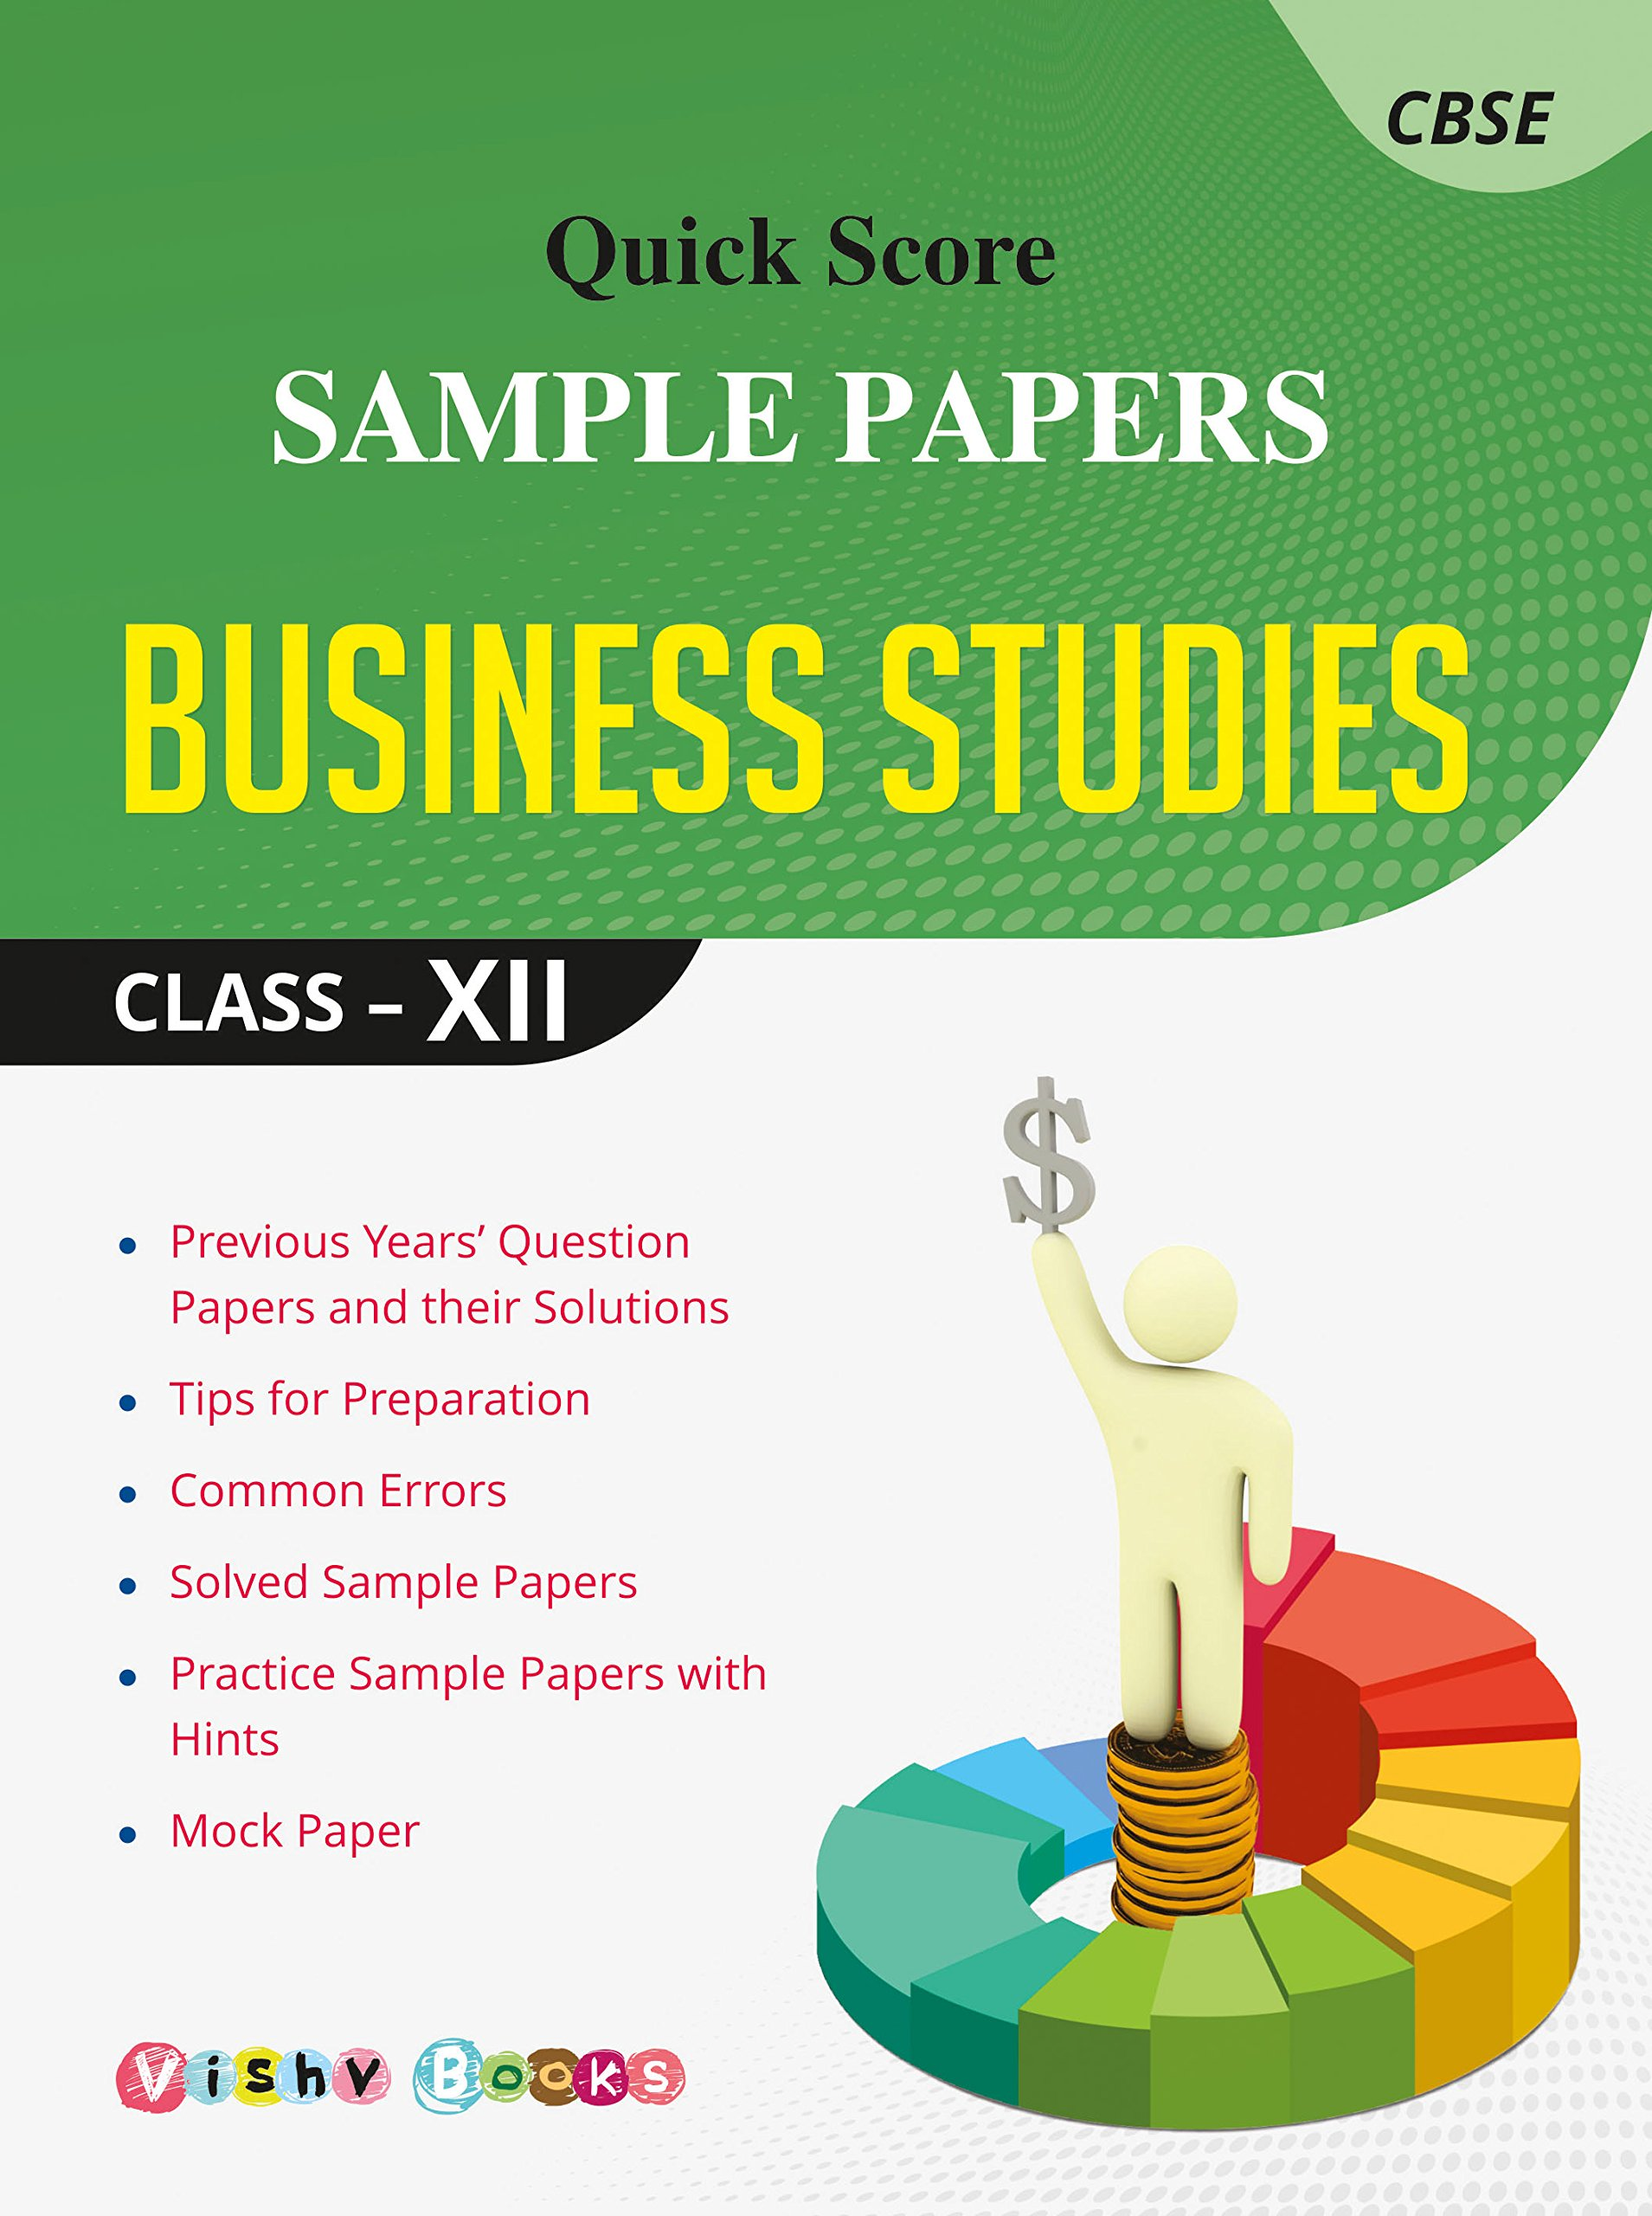 scoring guide thesis research papers Research paper rubric - free download as word doc (doc / docx), pdf file (pdf), text file (txt) or view presentation slides online rubric for college history class research papers that require original research in secondary sources.